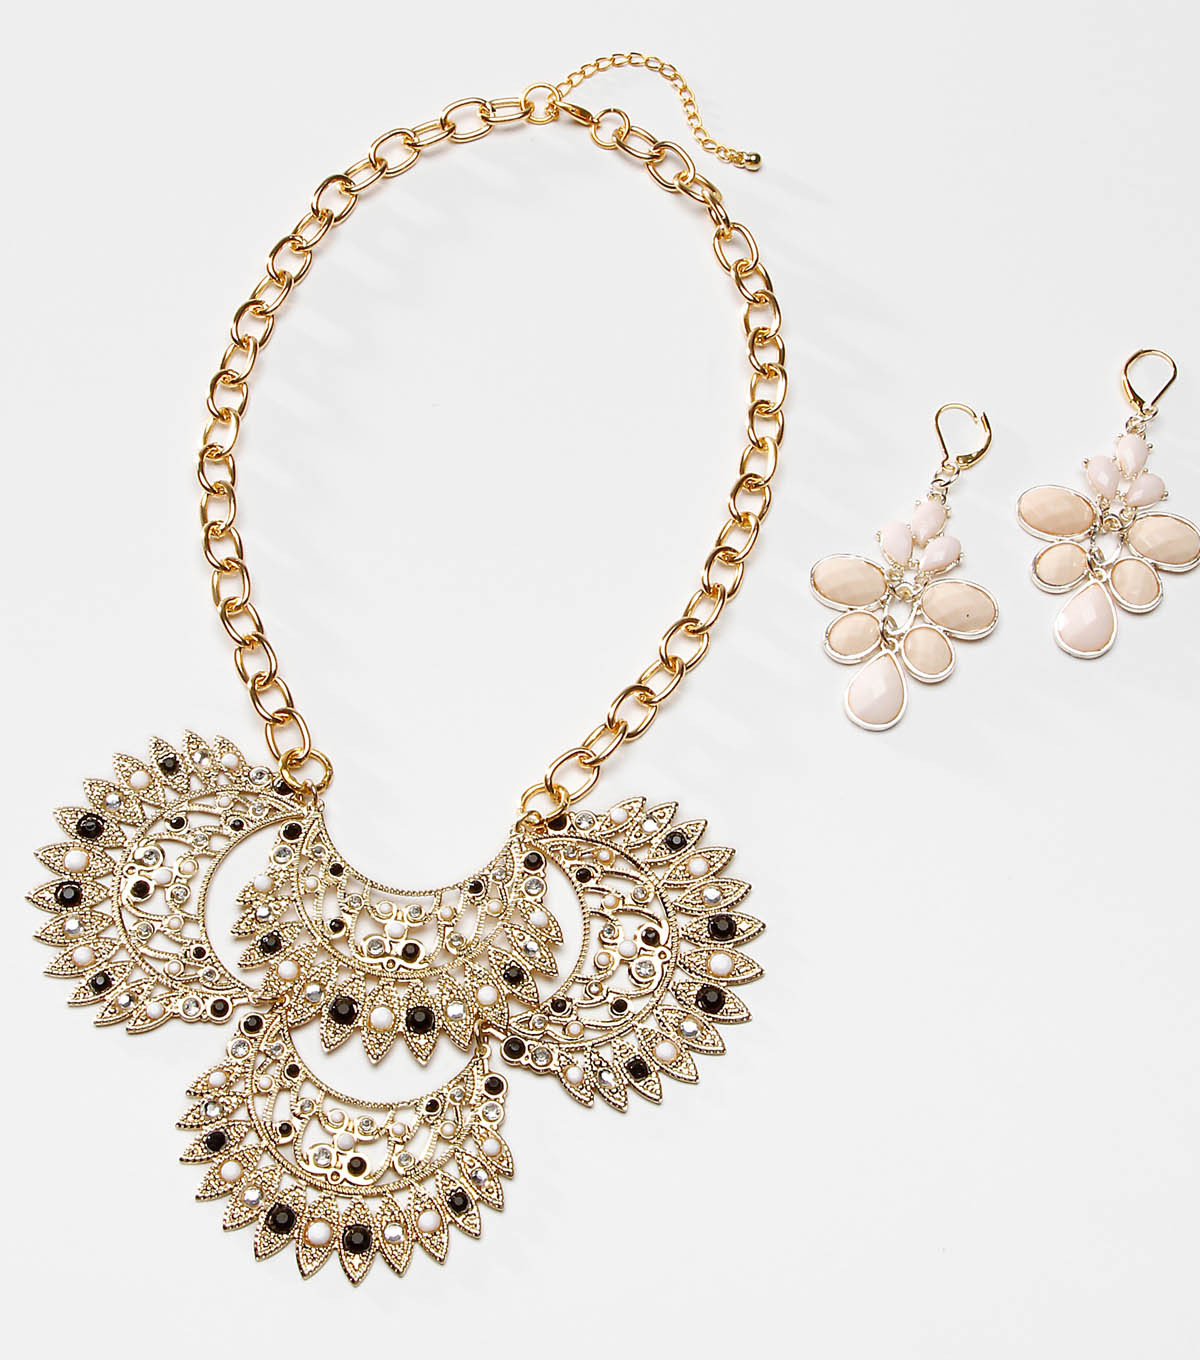 Tori spelling Fan Glam Necklace and Earring Set